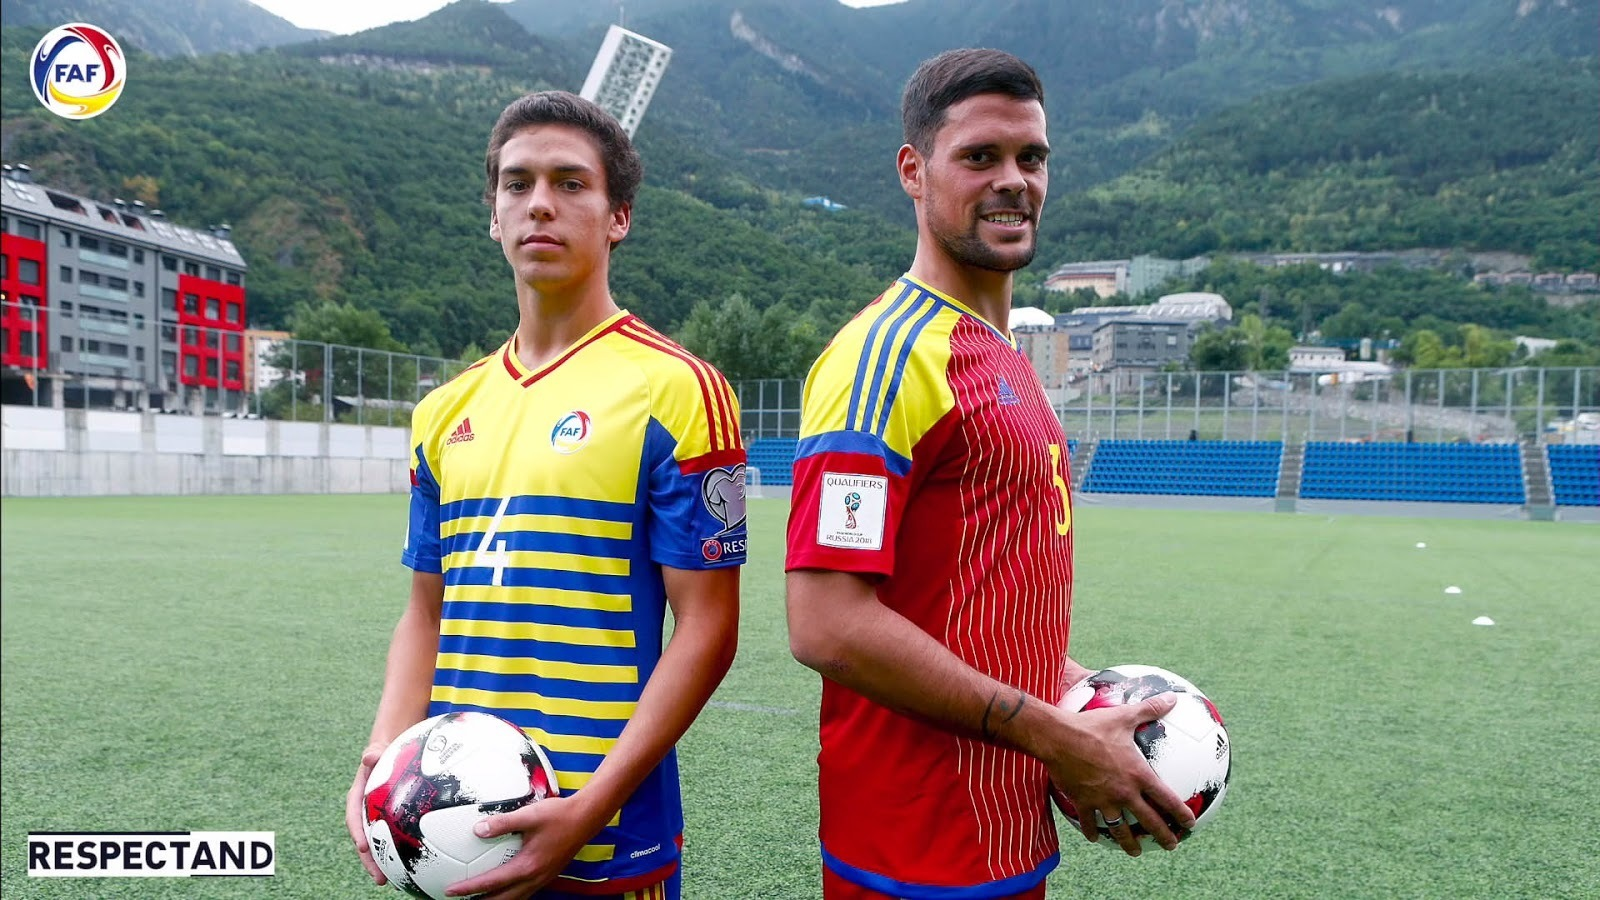 Andorra-2016-17-new-adidas-kit-2.jpg